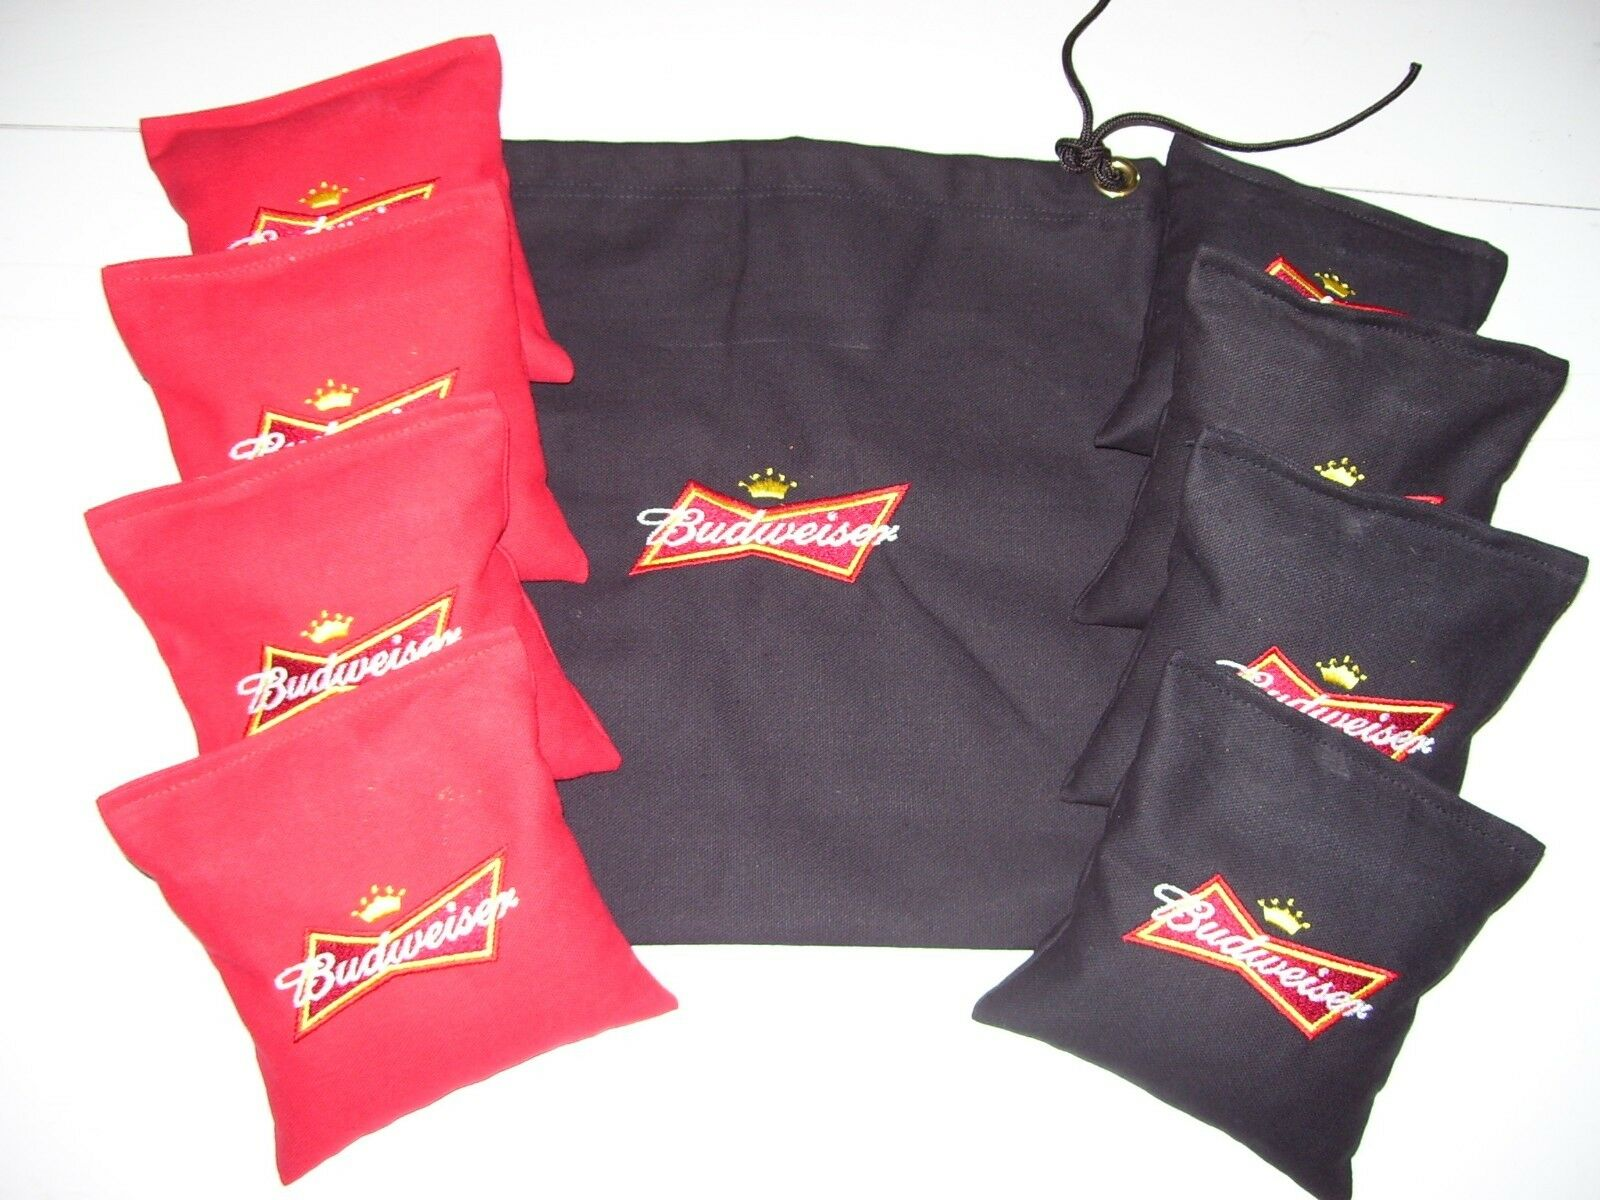 Budweiser Set of 8 Embroidered Cornhole Corn Hole Bags & Storage Bag